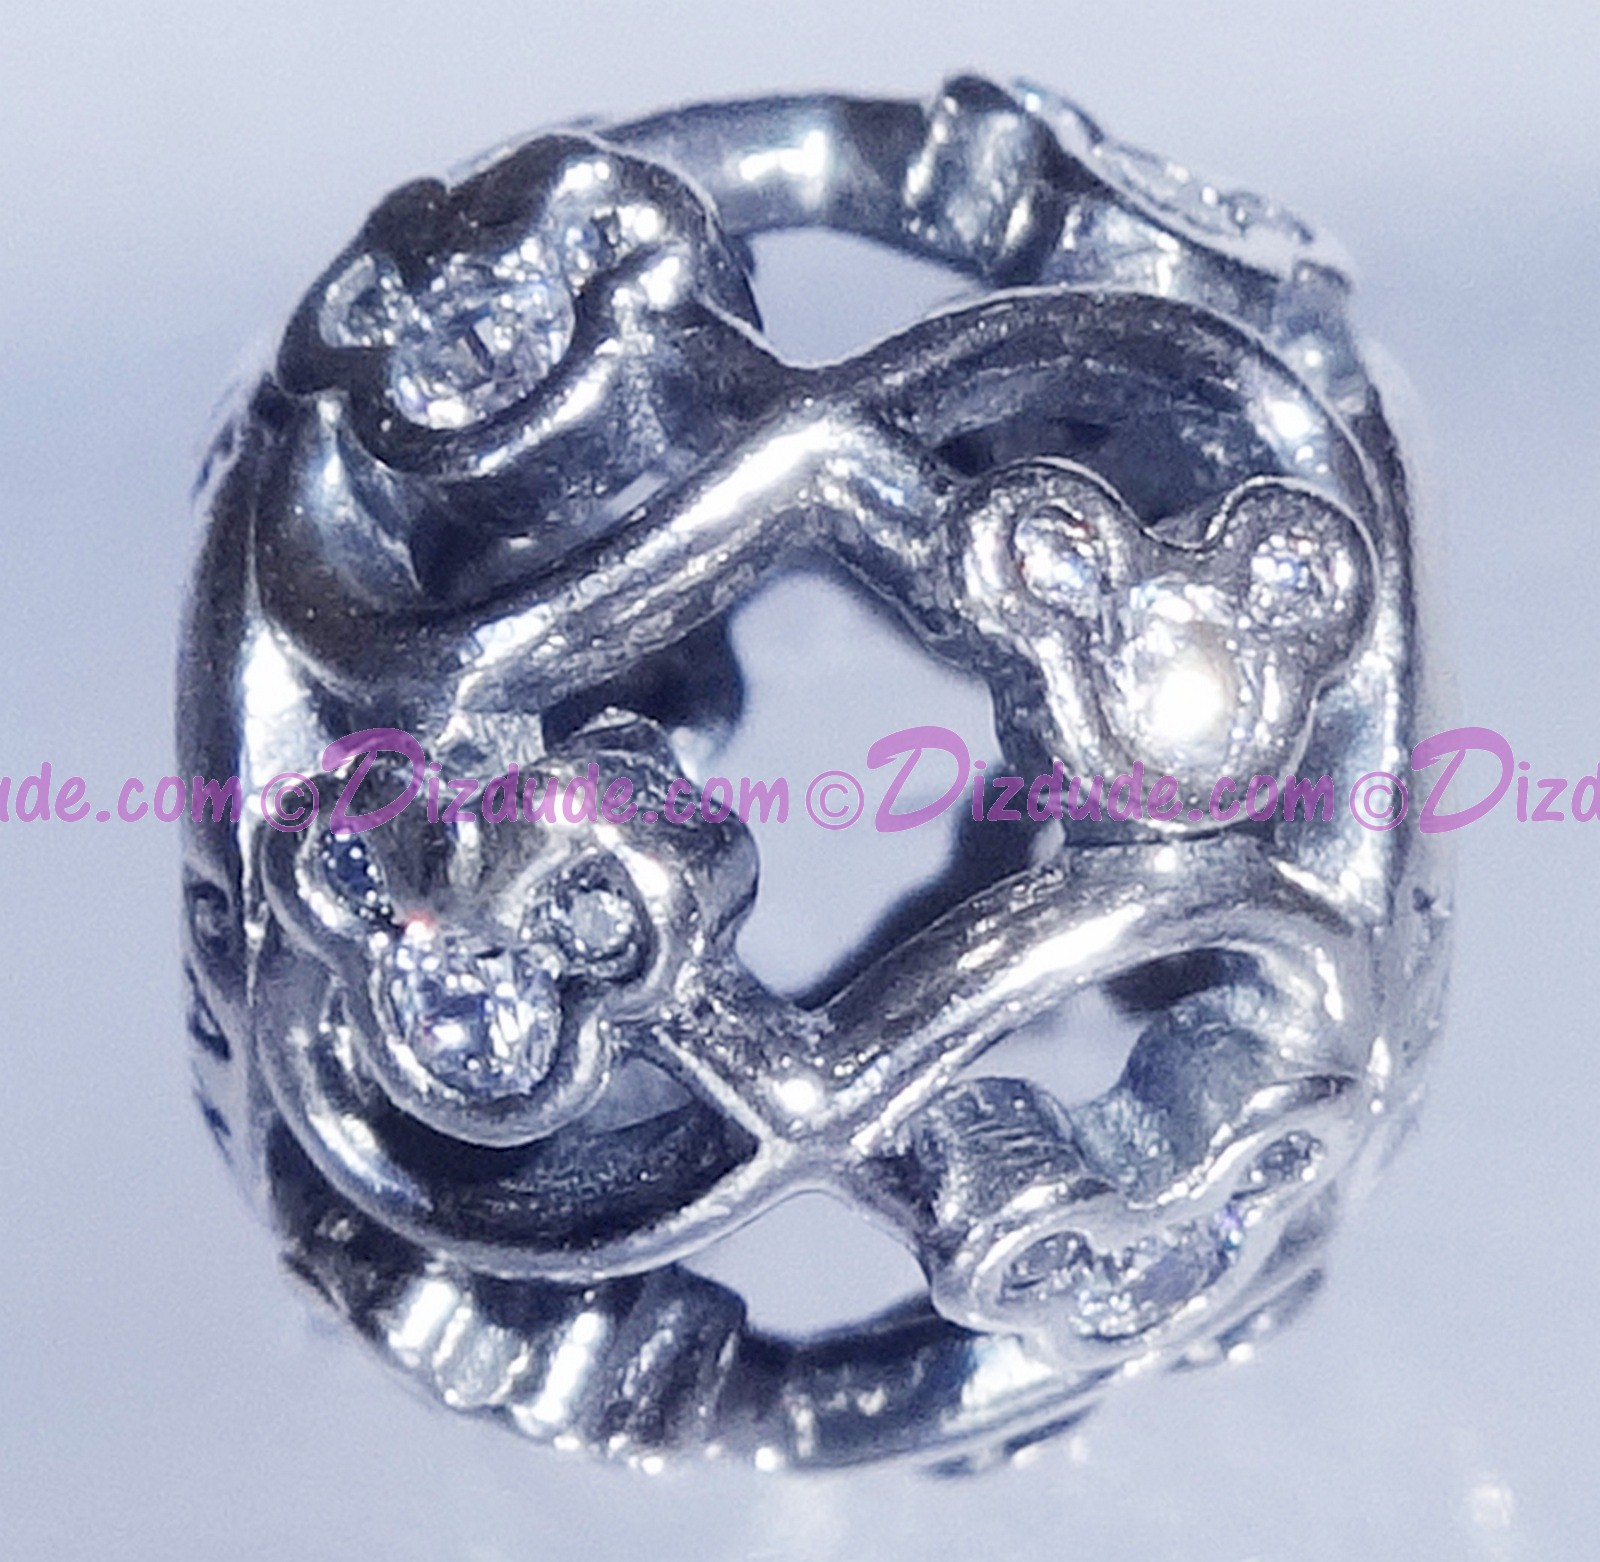 """(SOLD OUT) Disney Pandora """"Mickey & Minnie Infinity"""" Sterling Silver Charm with Cubic Zirconias"""